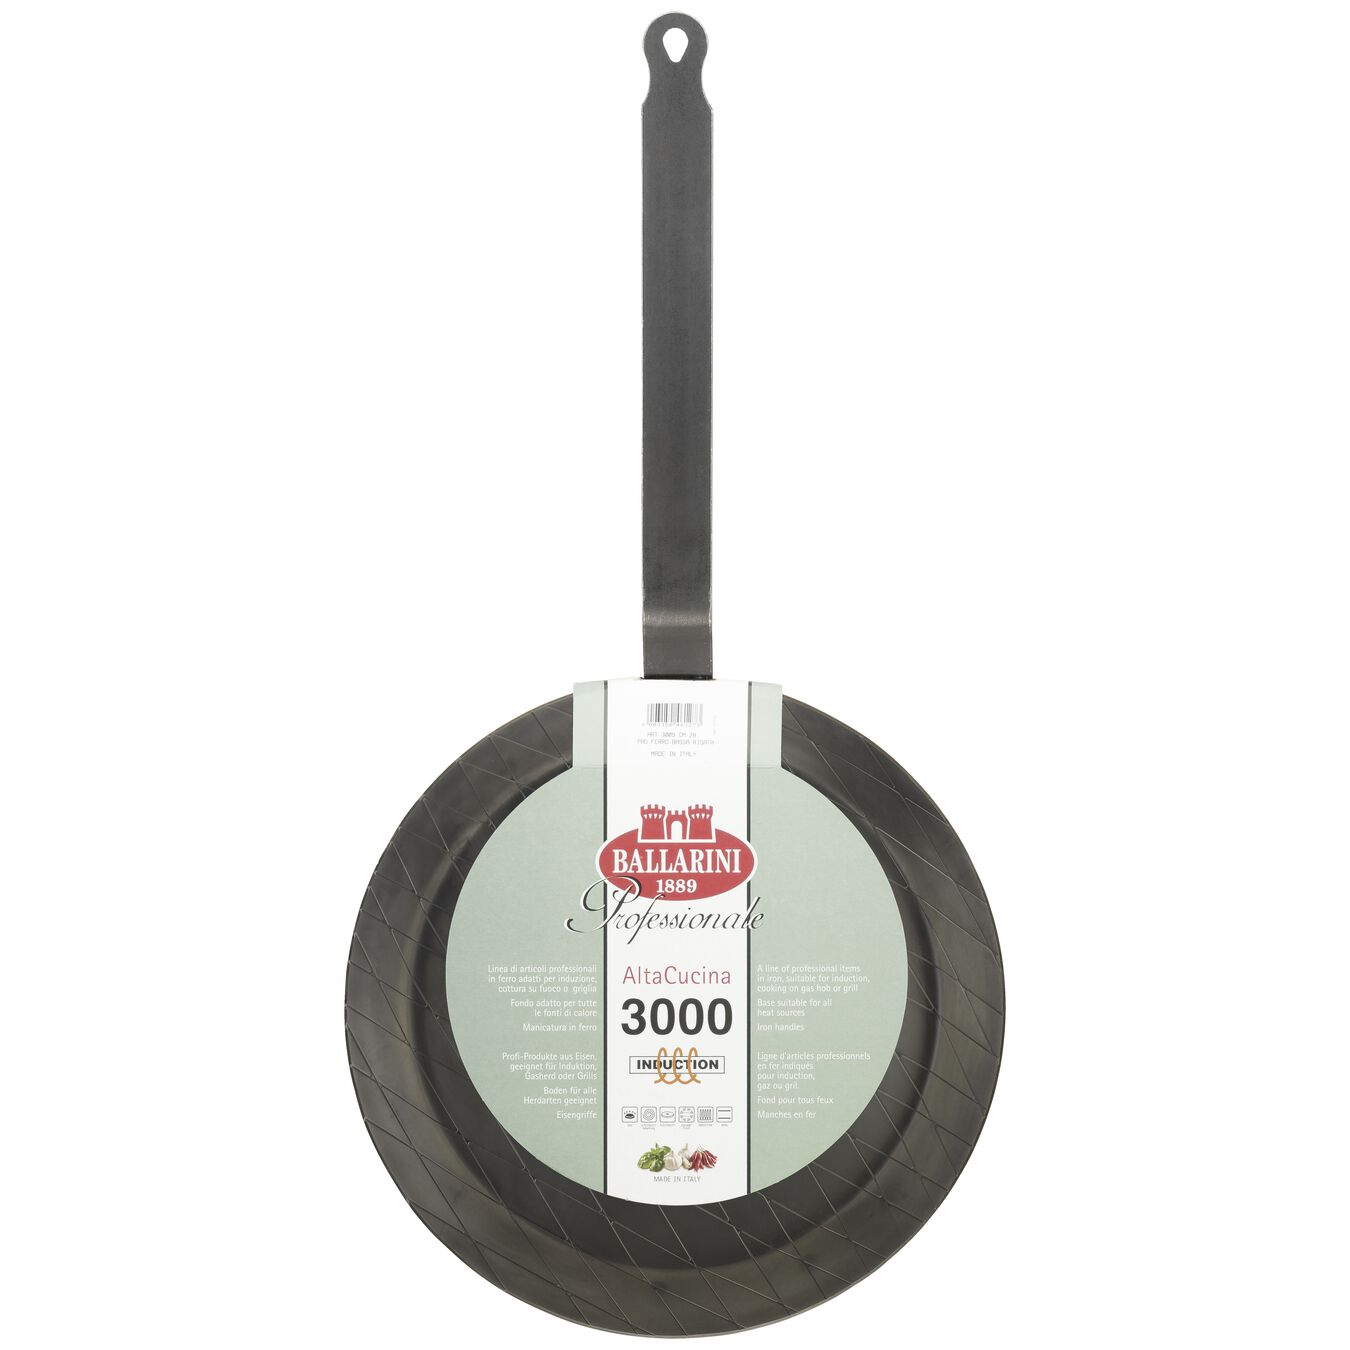 28 cm / 11 inch Carbon steel Frying pan,,large 3